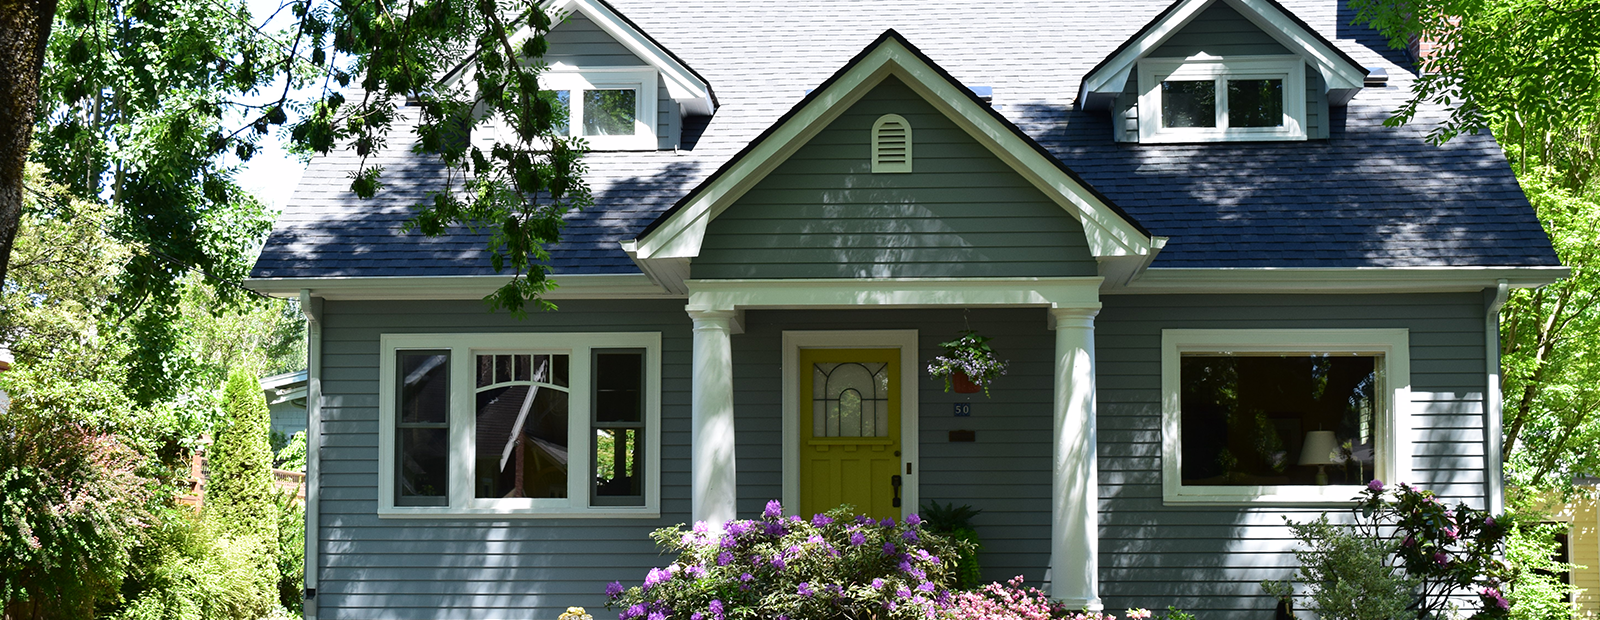 house painting in tigard